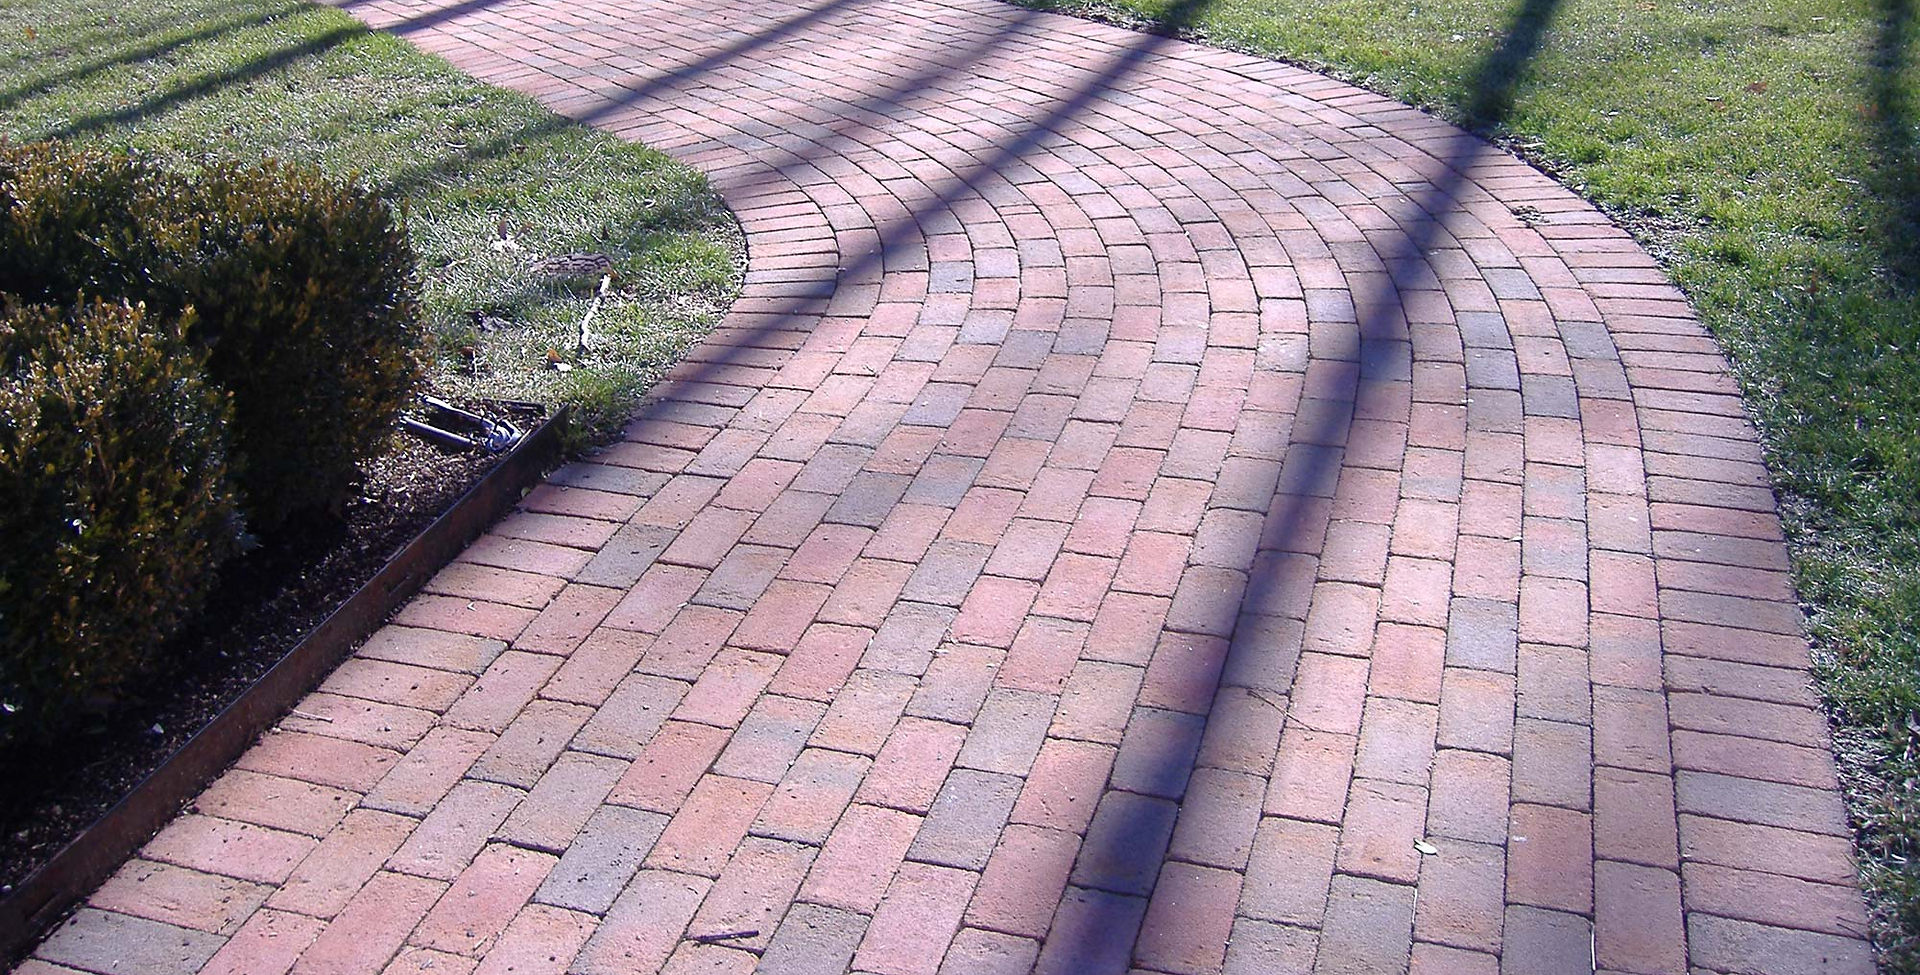 Holland stone paver walkway runner bond.